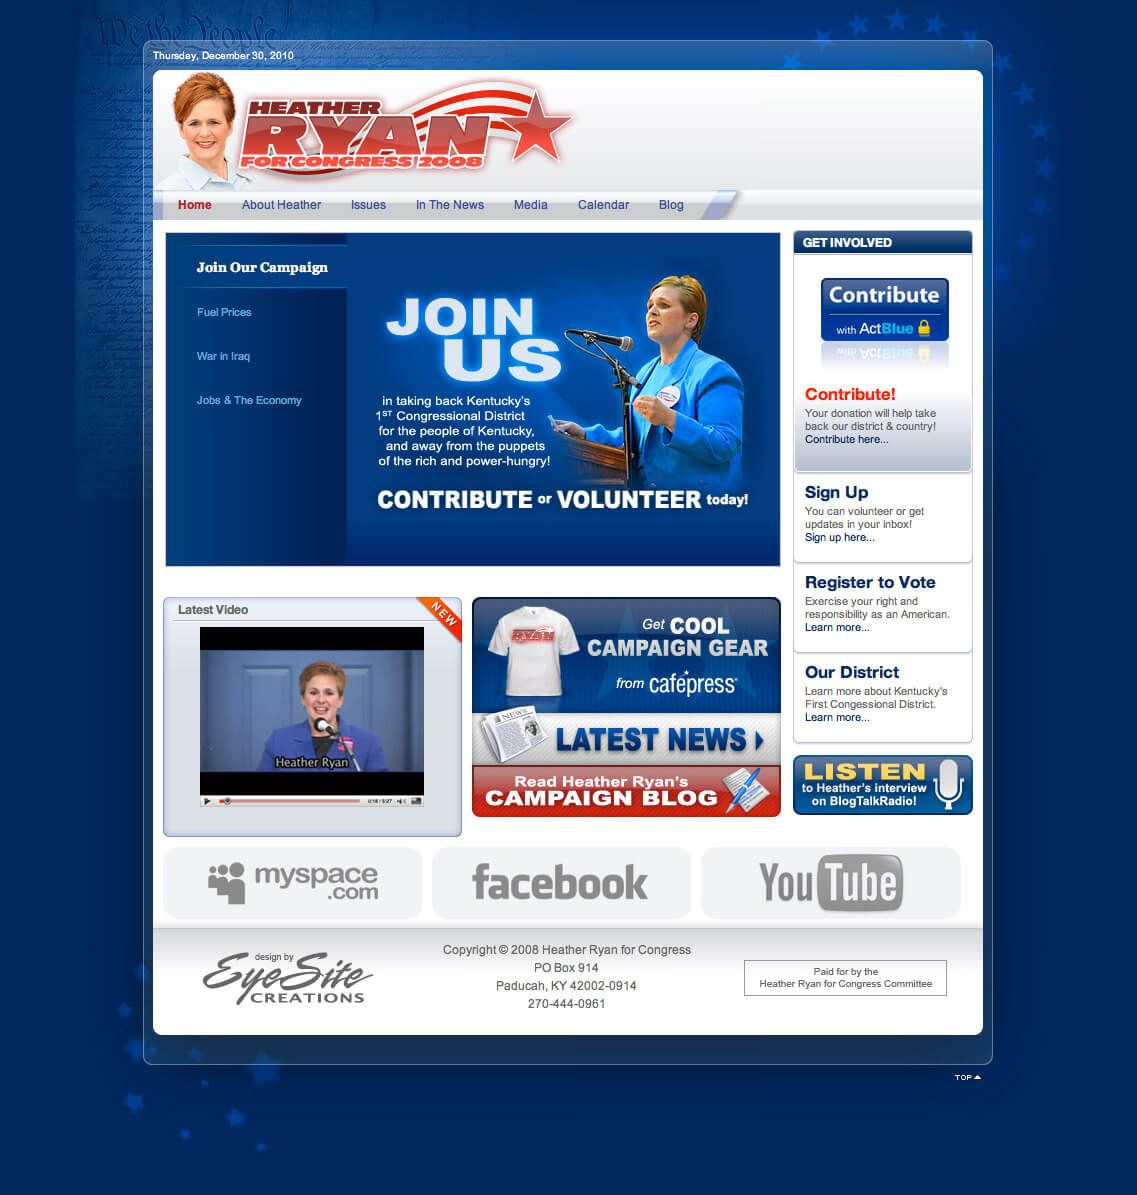 Heather Ryan for Congress website by EyeSite Creations